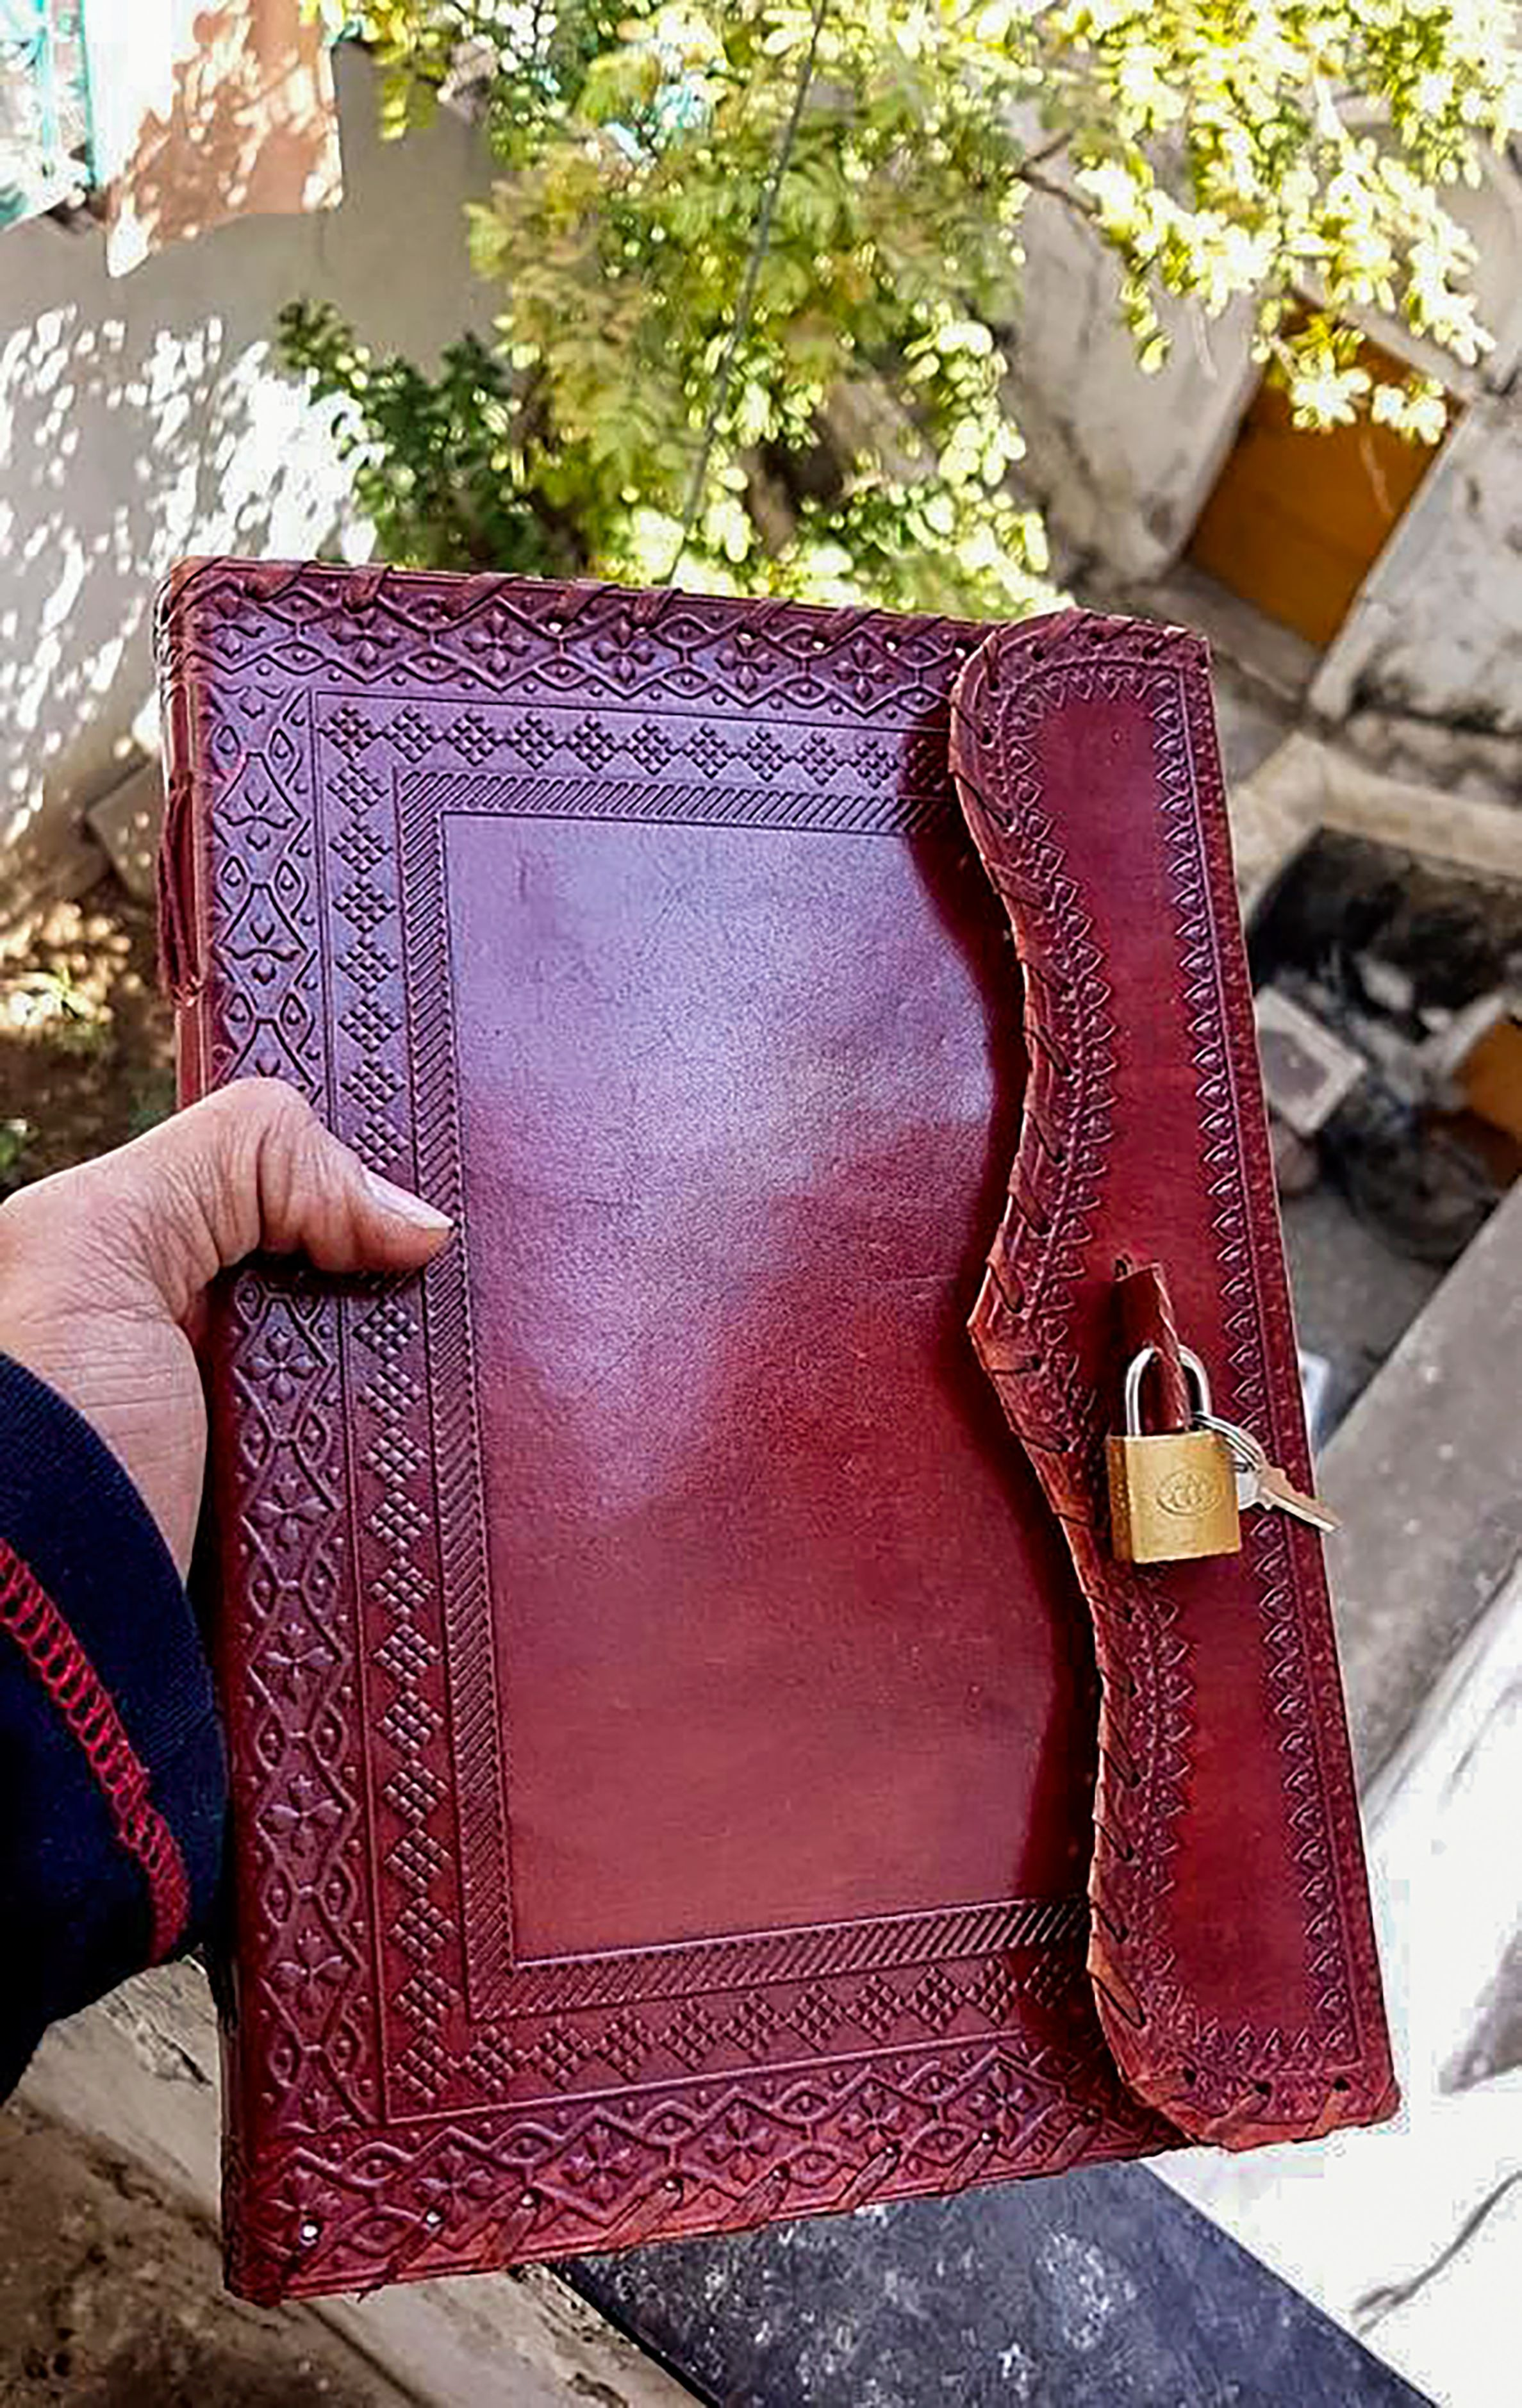 Handmade Leather Journal Personalized Custom Leather Journal Large Blank Vintage Diary With Lock Leather Refillable Journal In 2020 Handmade Leather Journal Leather Journal Leather Diary